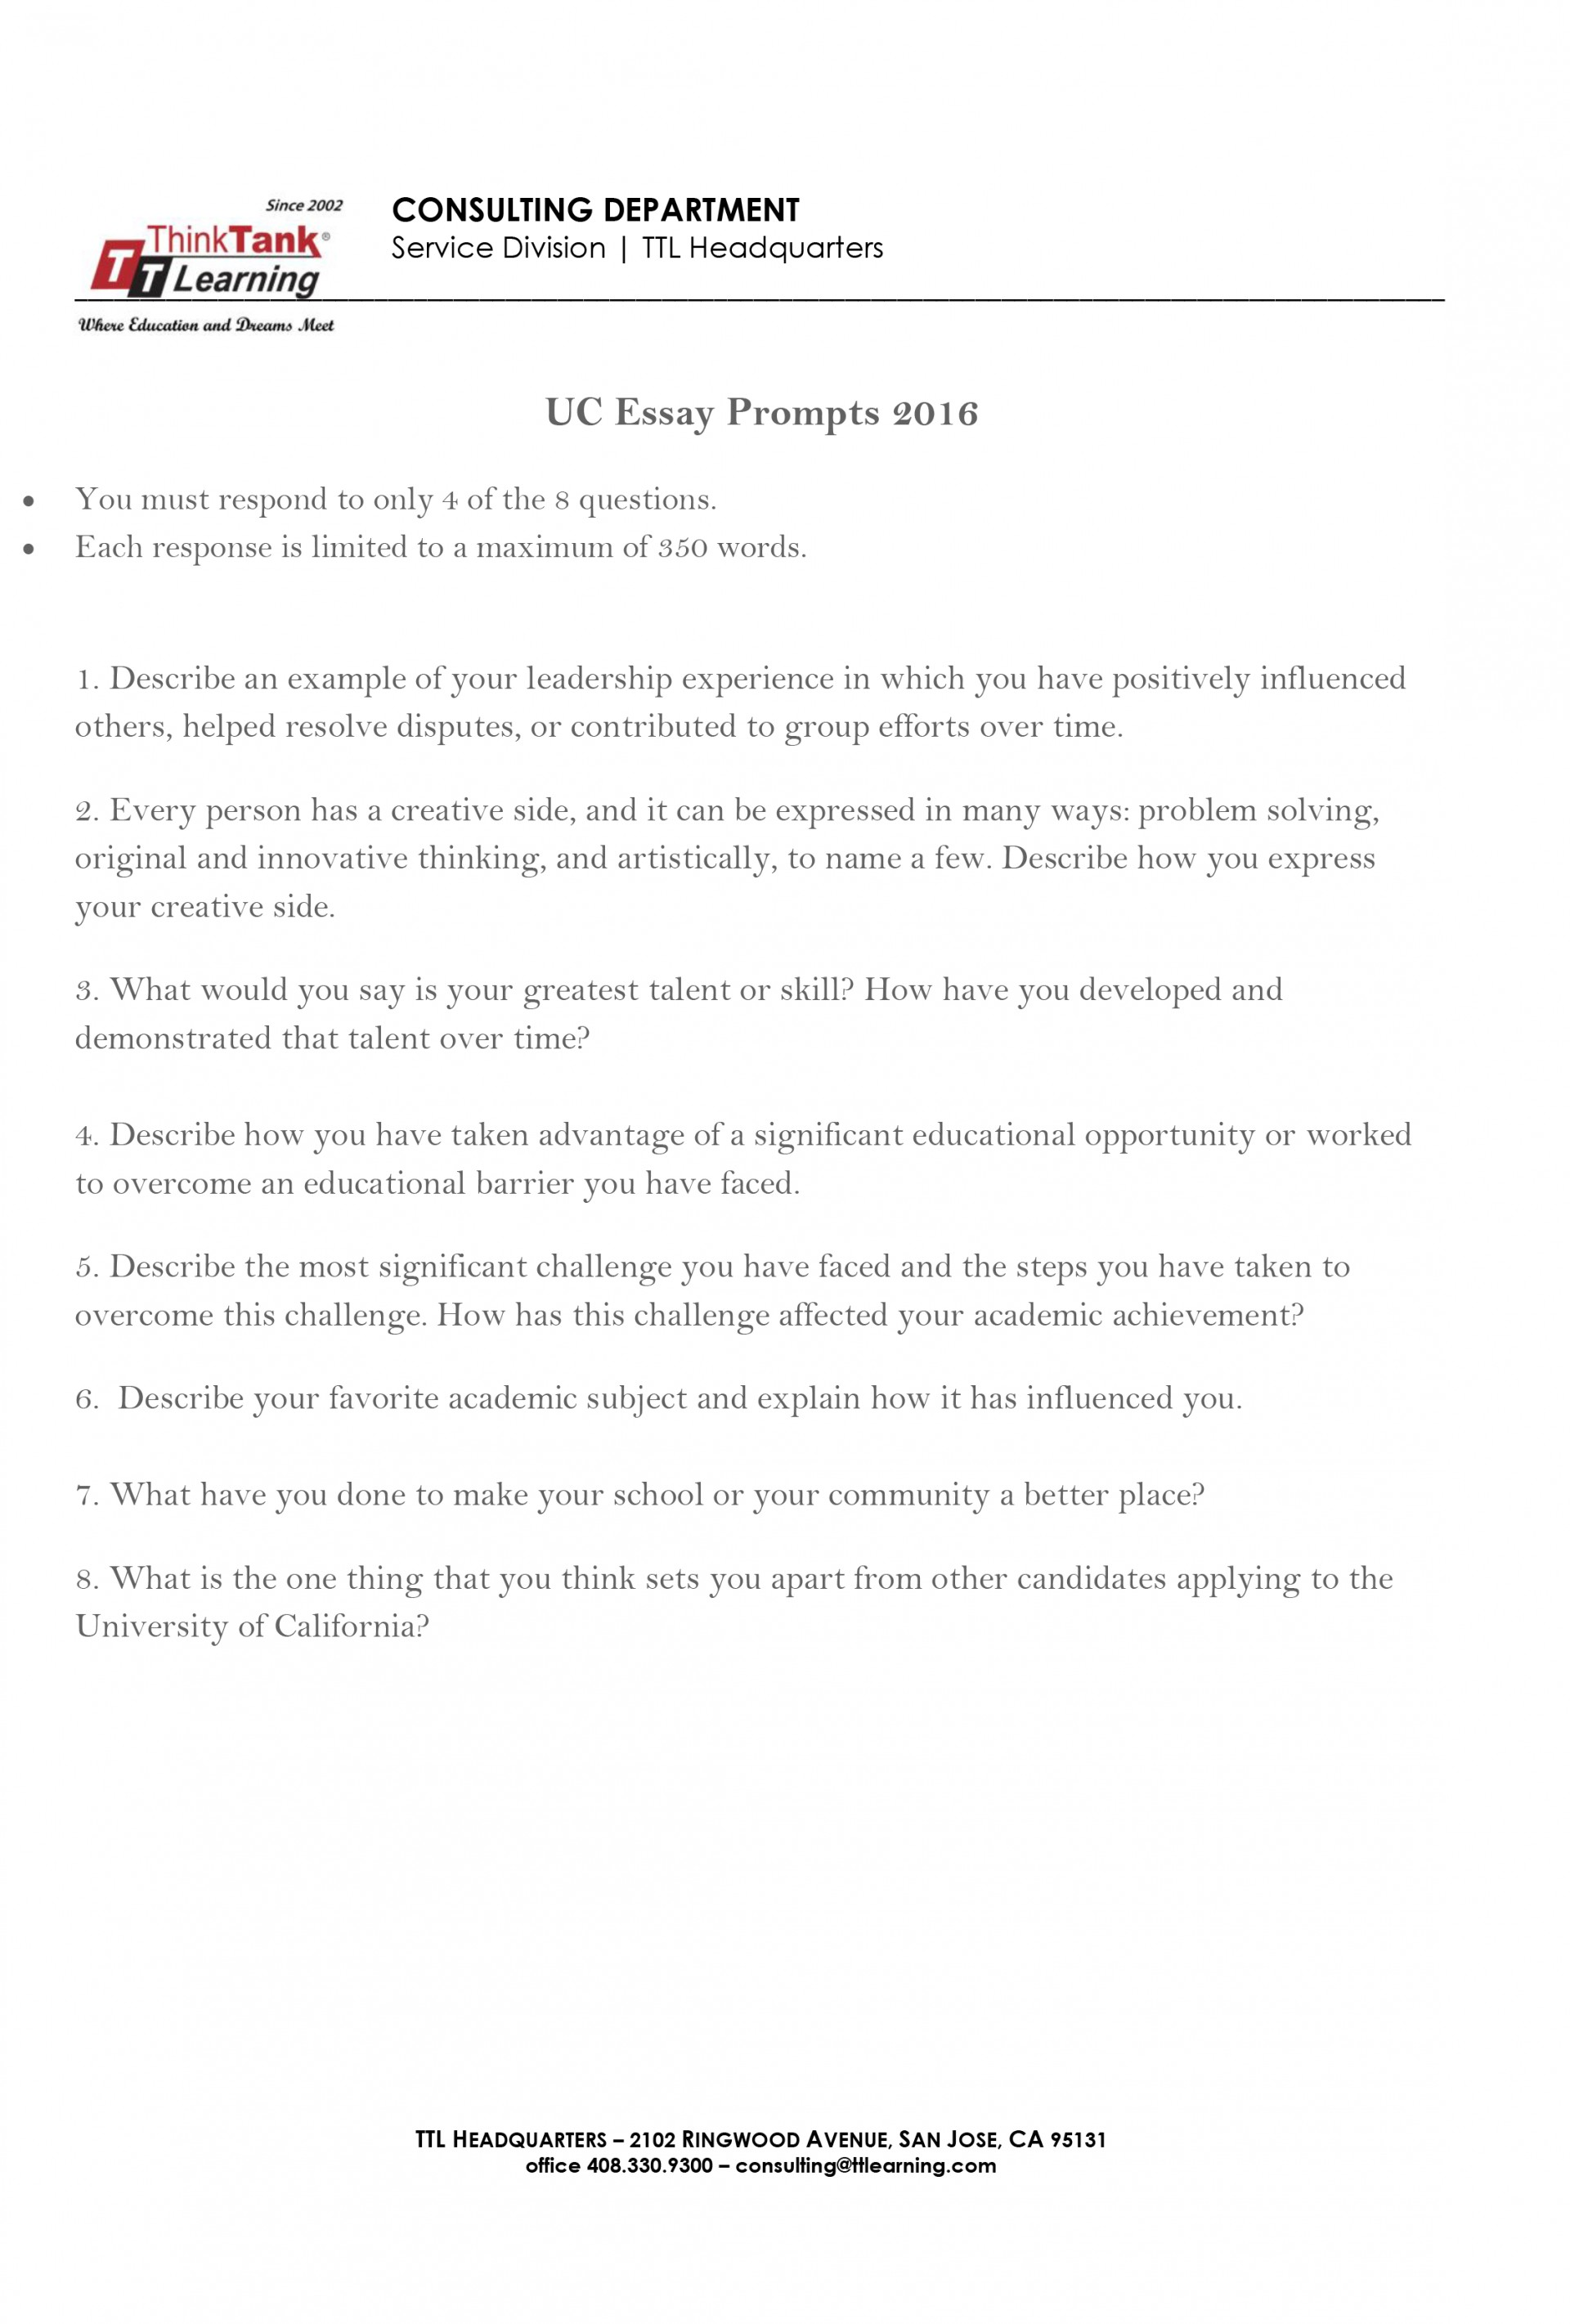 015 Essay Example Ucla Prompt Uc Prompts 2016 2 Fascinating College Application 2018-19 2017 1920